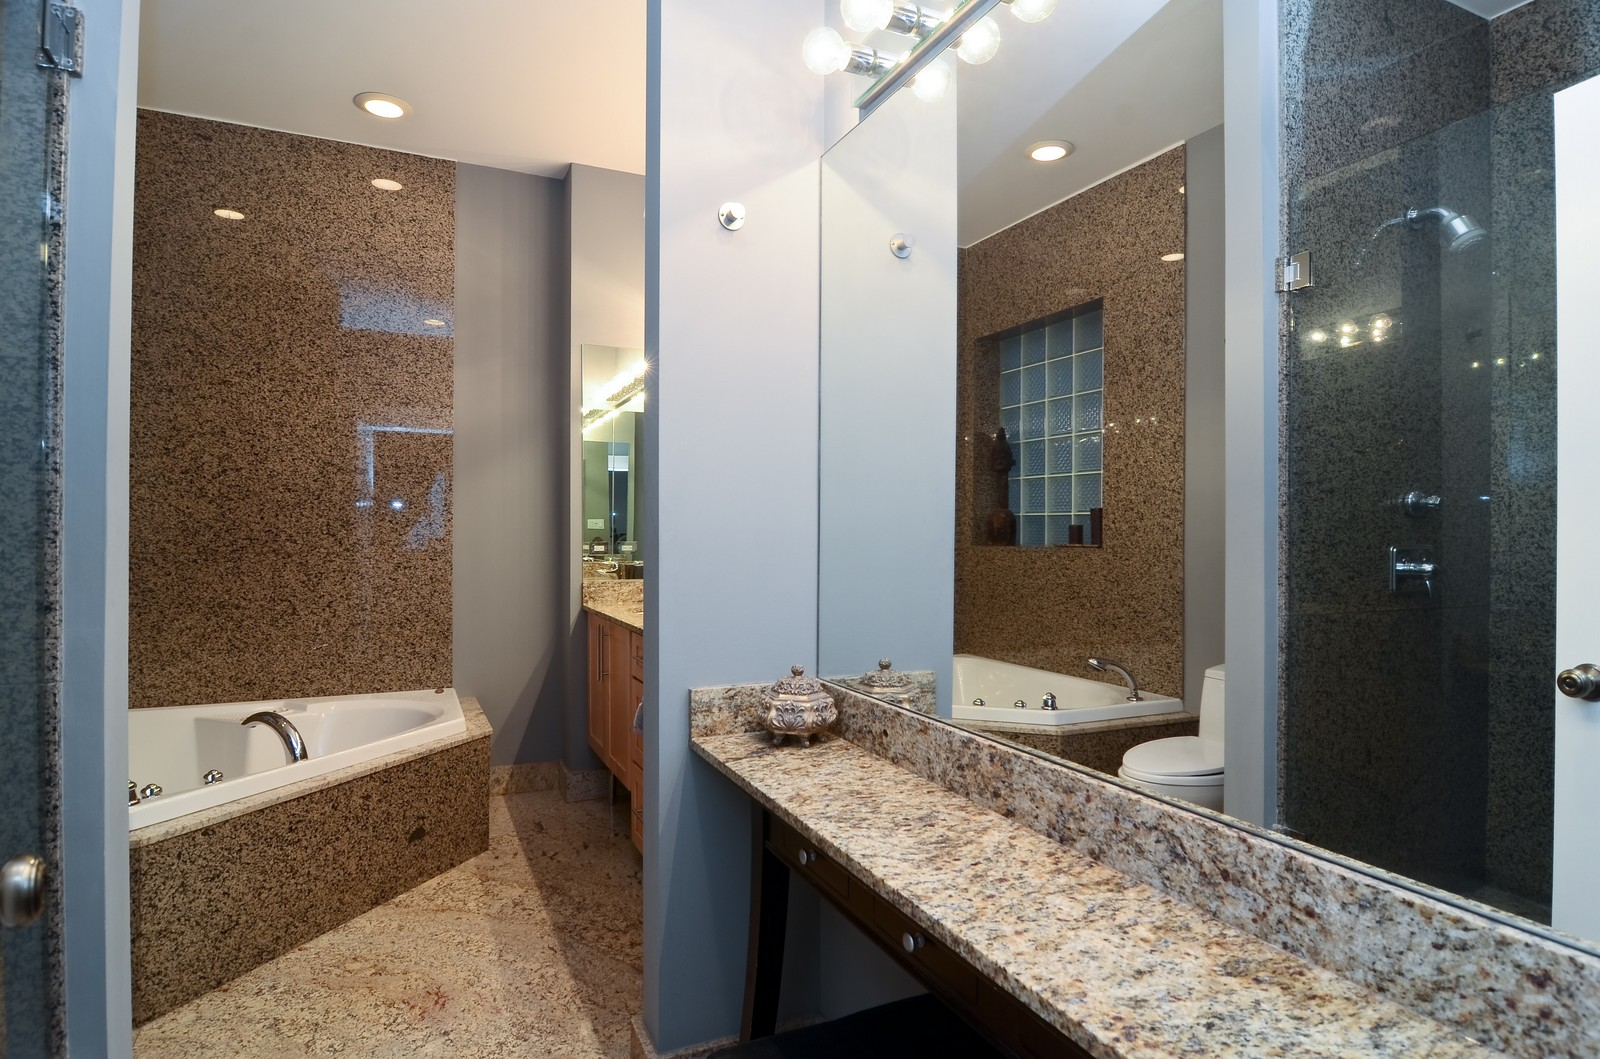 Real Estate Photography - 1856 W Armitage, Unit 1, Chicago, IL, 60622 - Master Bathroom